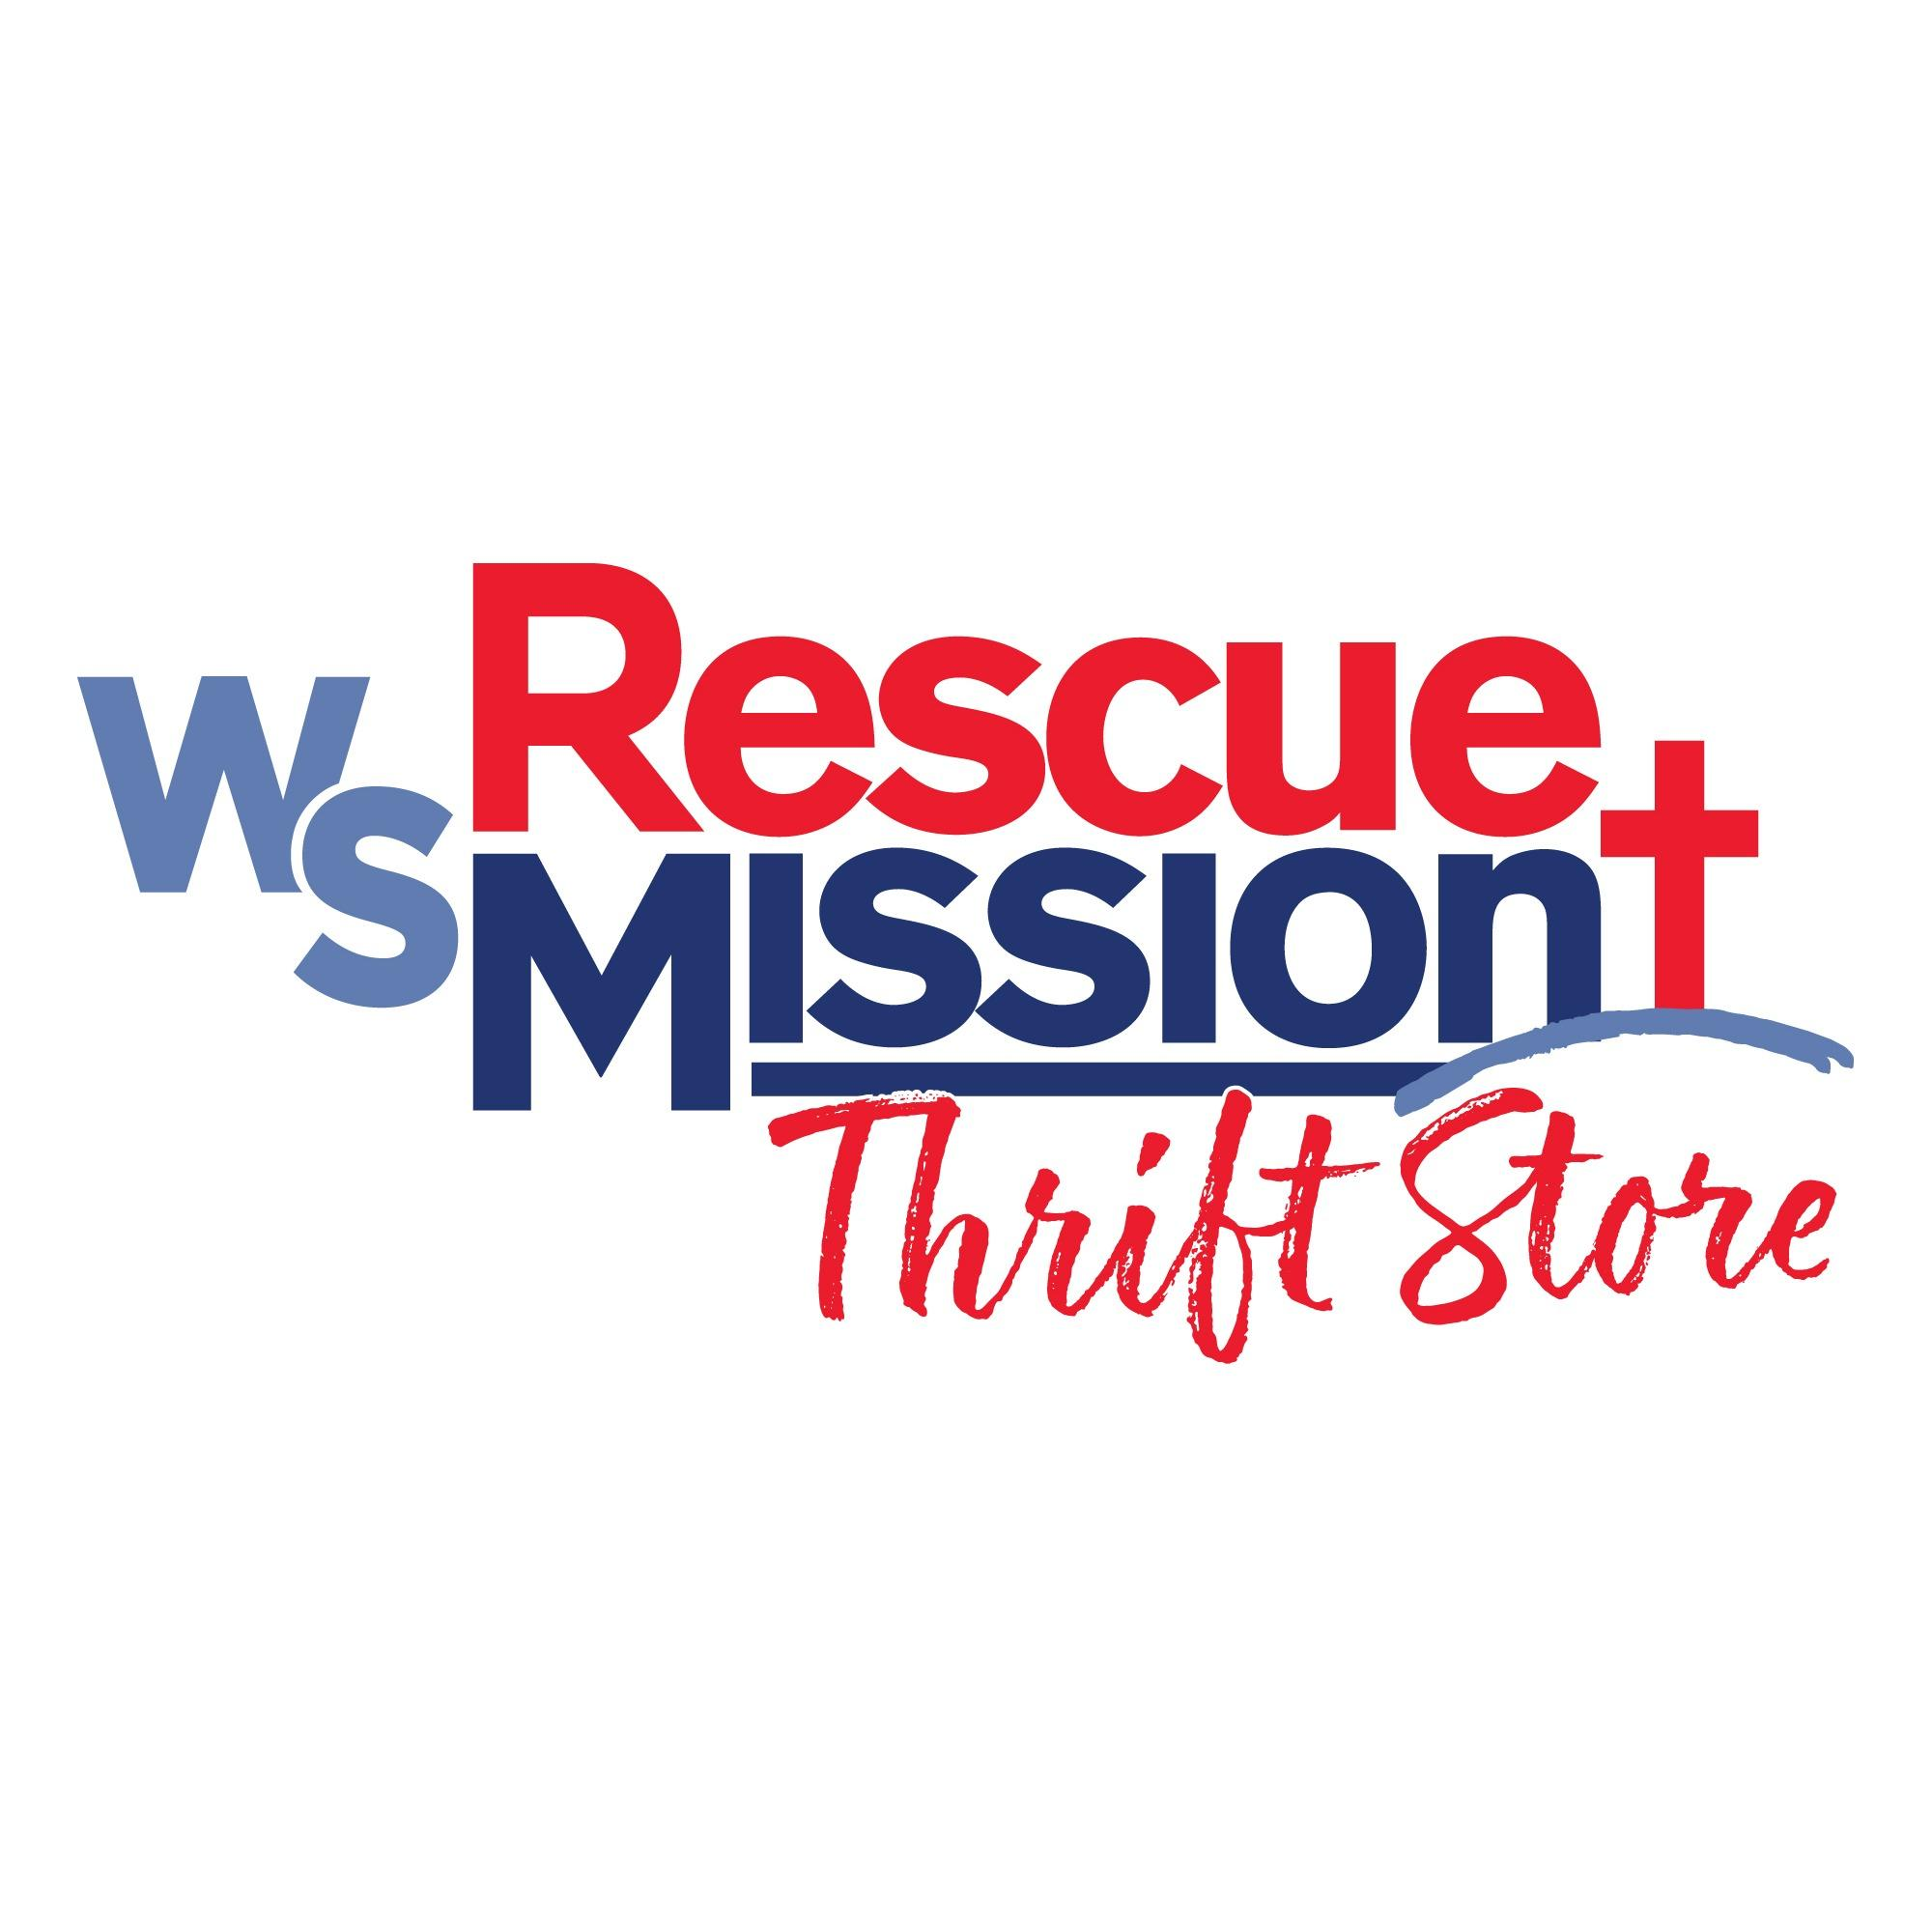 WS Rescue Mission Thrift Store